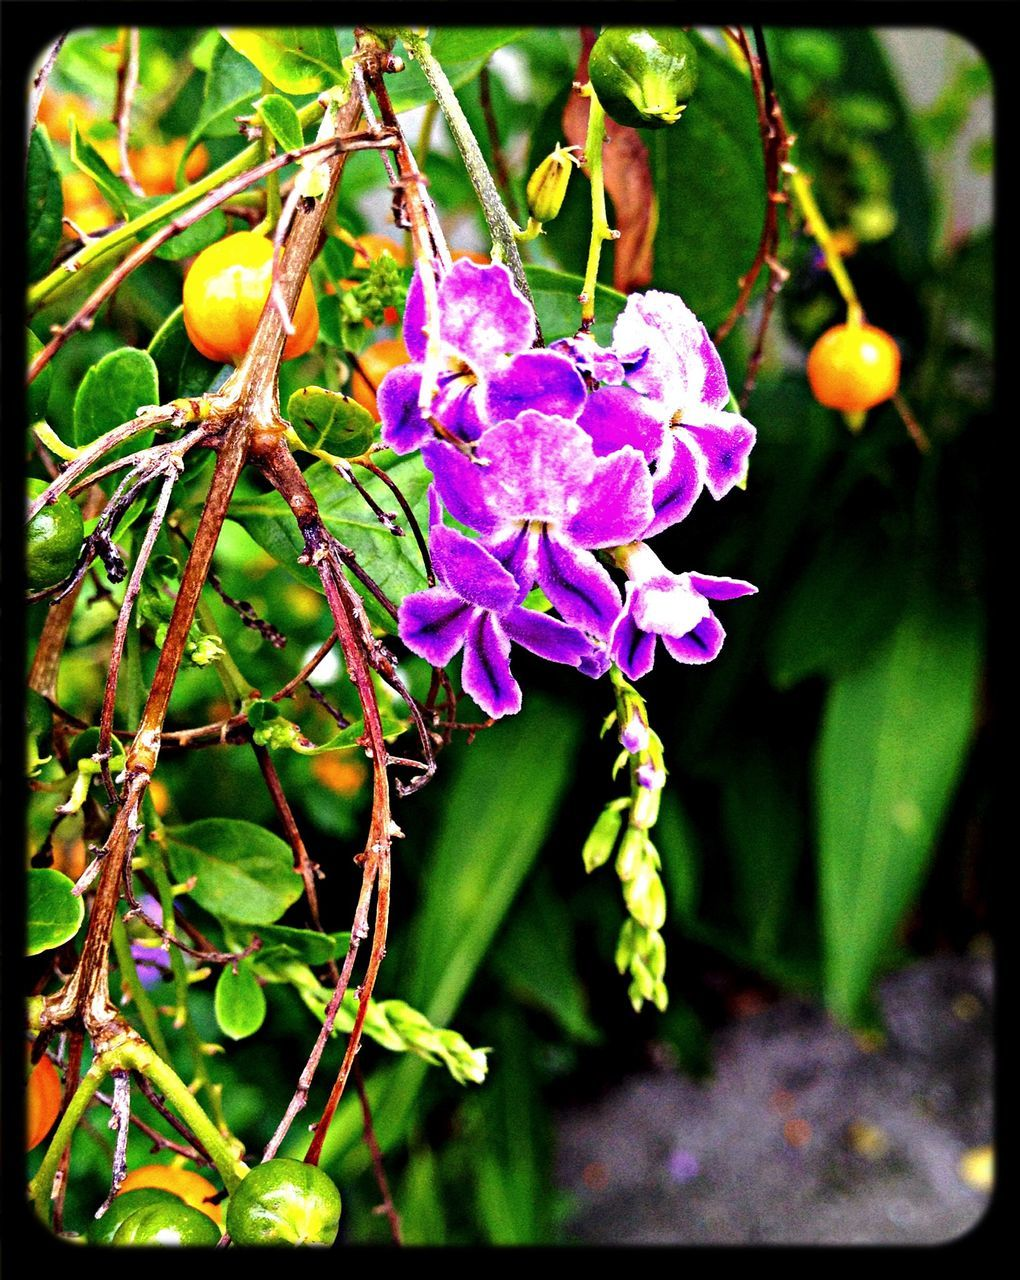 growth, beauty in nature, flower, nature, outdoors, plant, freshness, focus on foreground, day, no people, close-up, fragility, petal, branch, flower head, tree